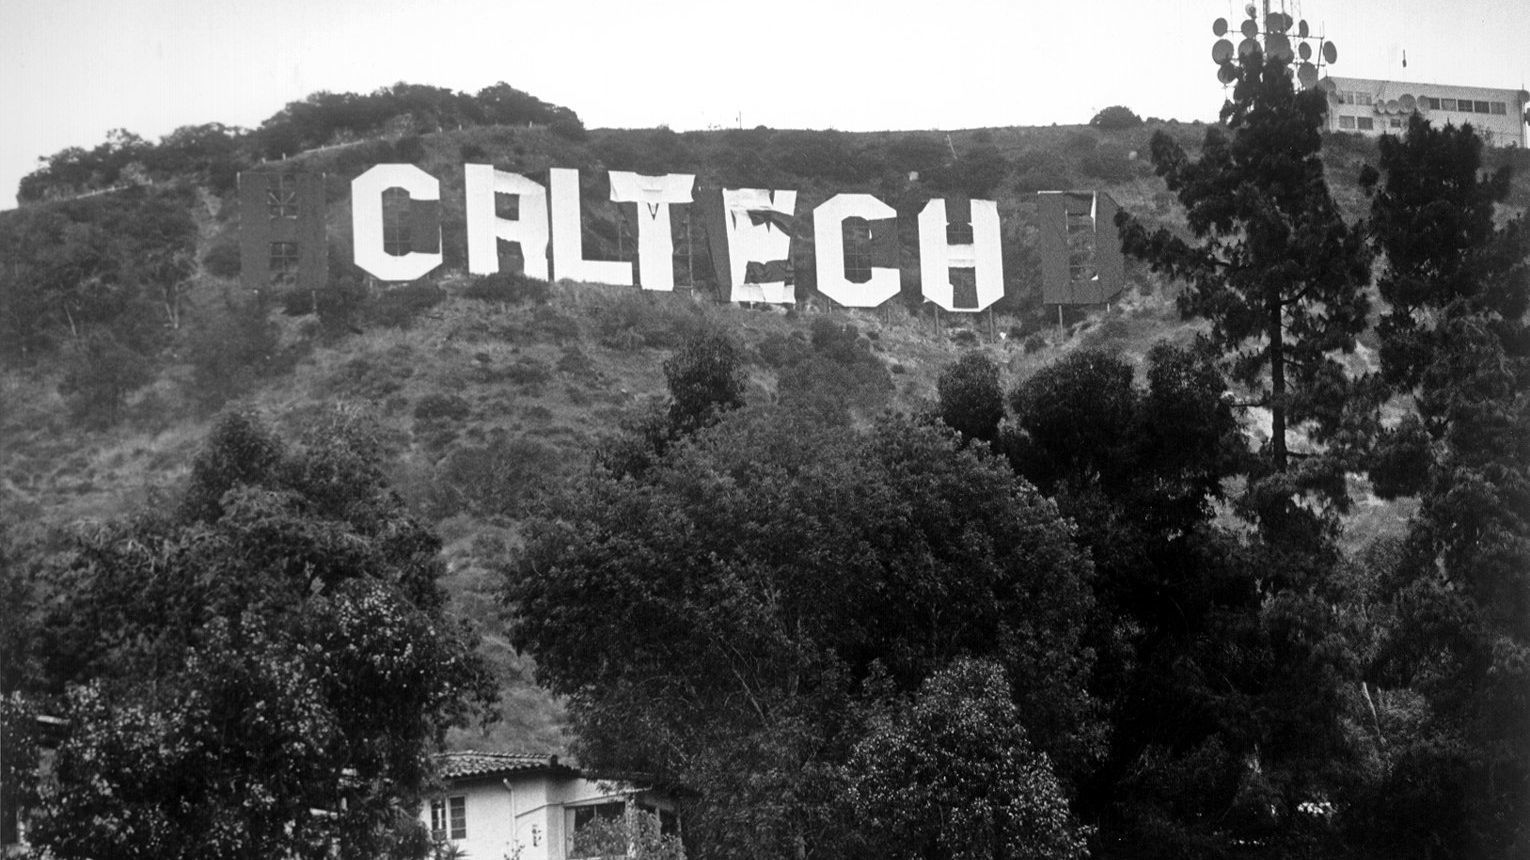 Hollywood Sign Altered To Read Hollyweed